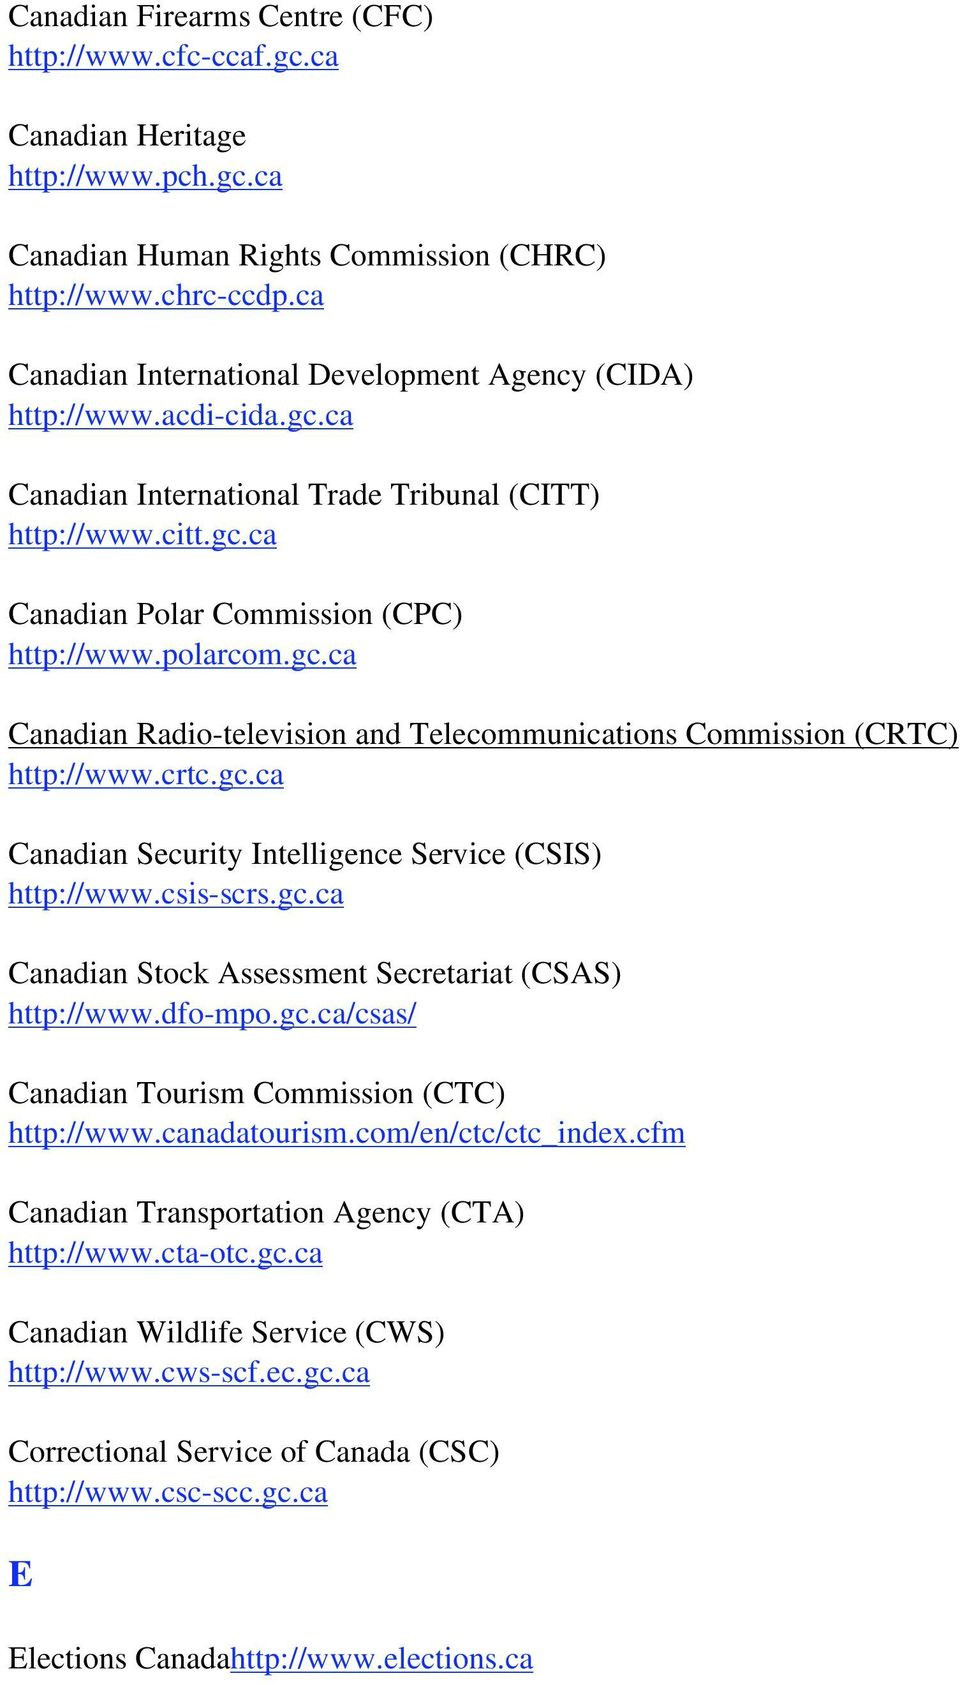 gc.ca Canadian Radio-television and Telecommunications Commission (CRTC) http://www.crtc.gc.ca Canadian Security Intelligence Service (CSIS) http://www.csis-scrs.gc.ca Canadian Stock Assessment Secretariat (CSAS) http://www.